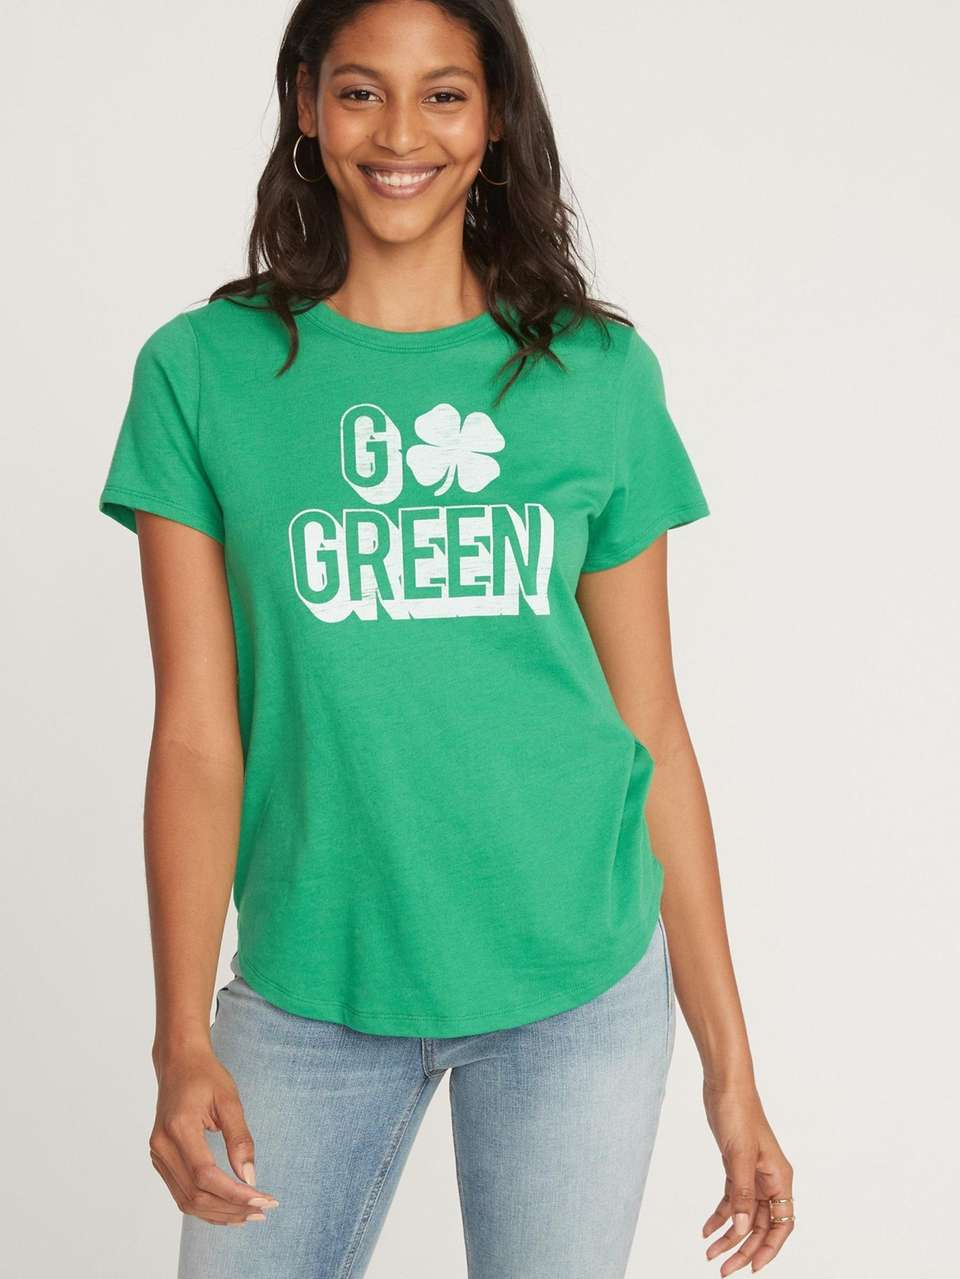 807e1c04b St. Patrick's Day clothes, accessories, more | Newsday